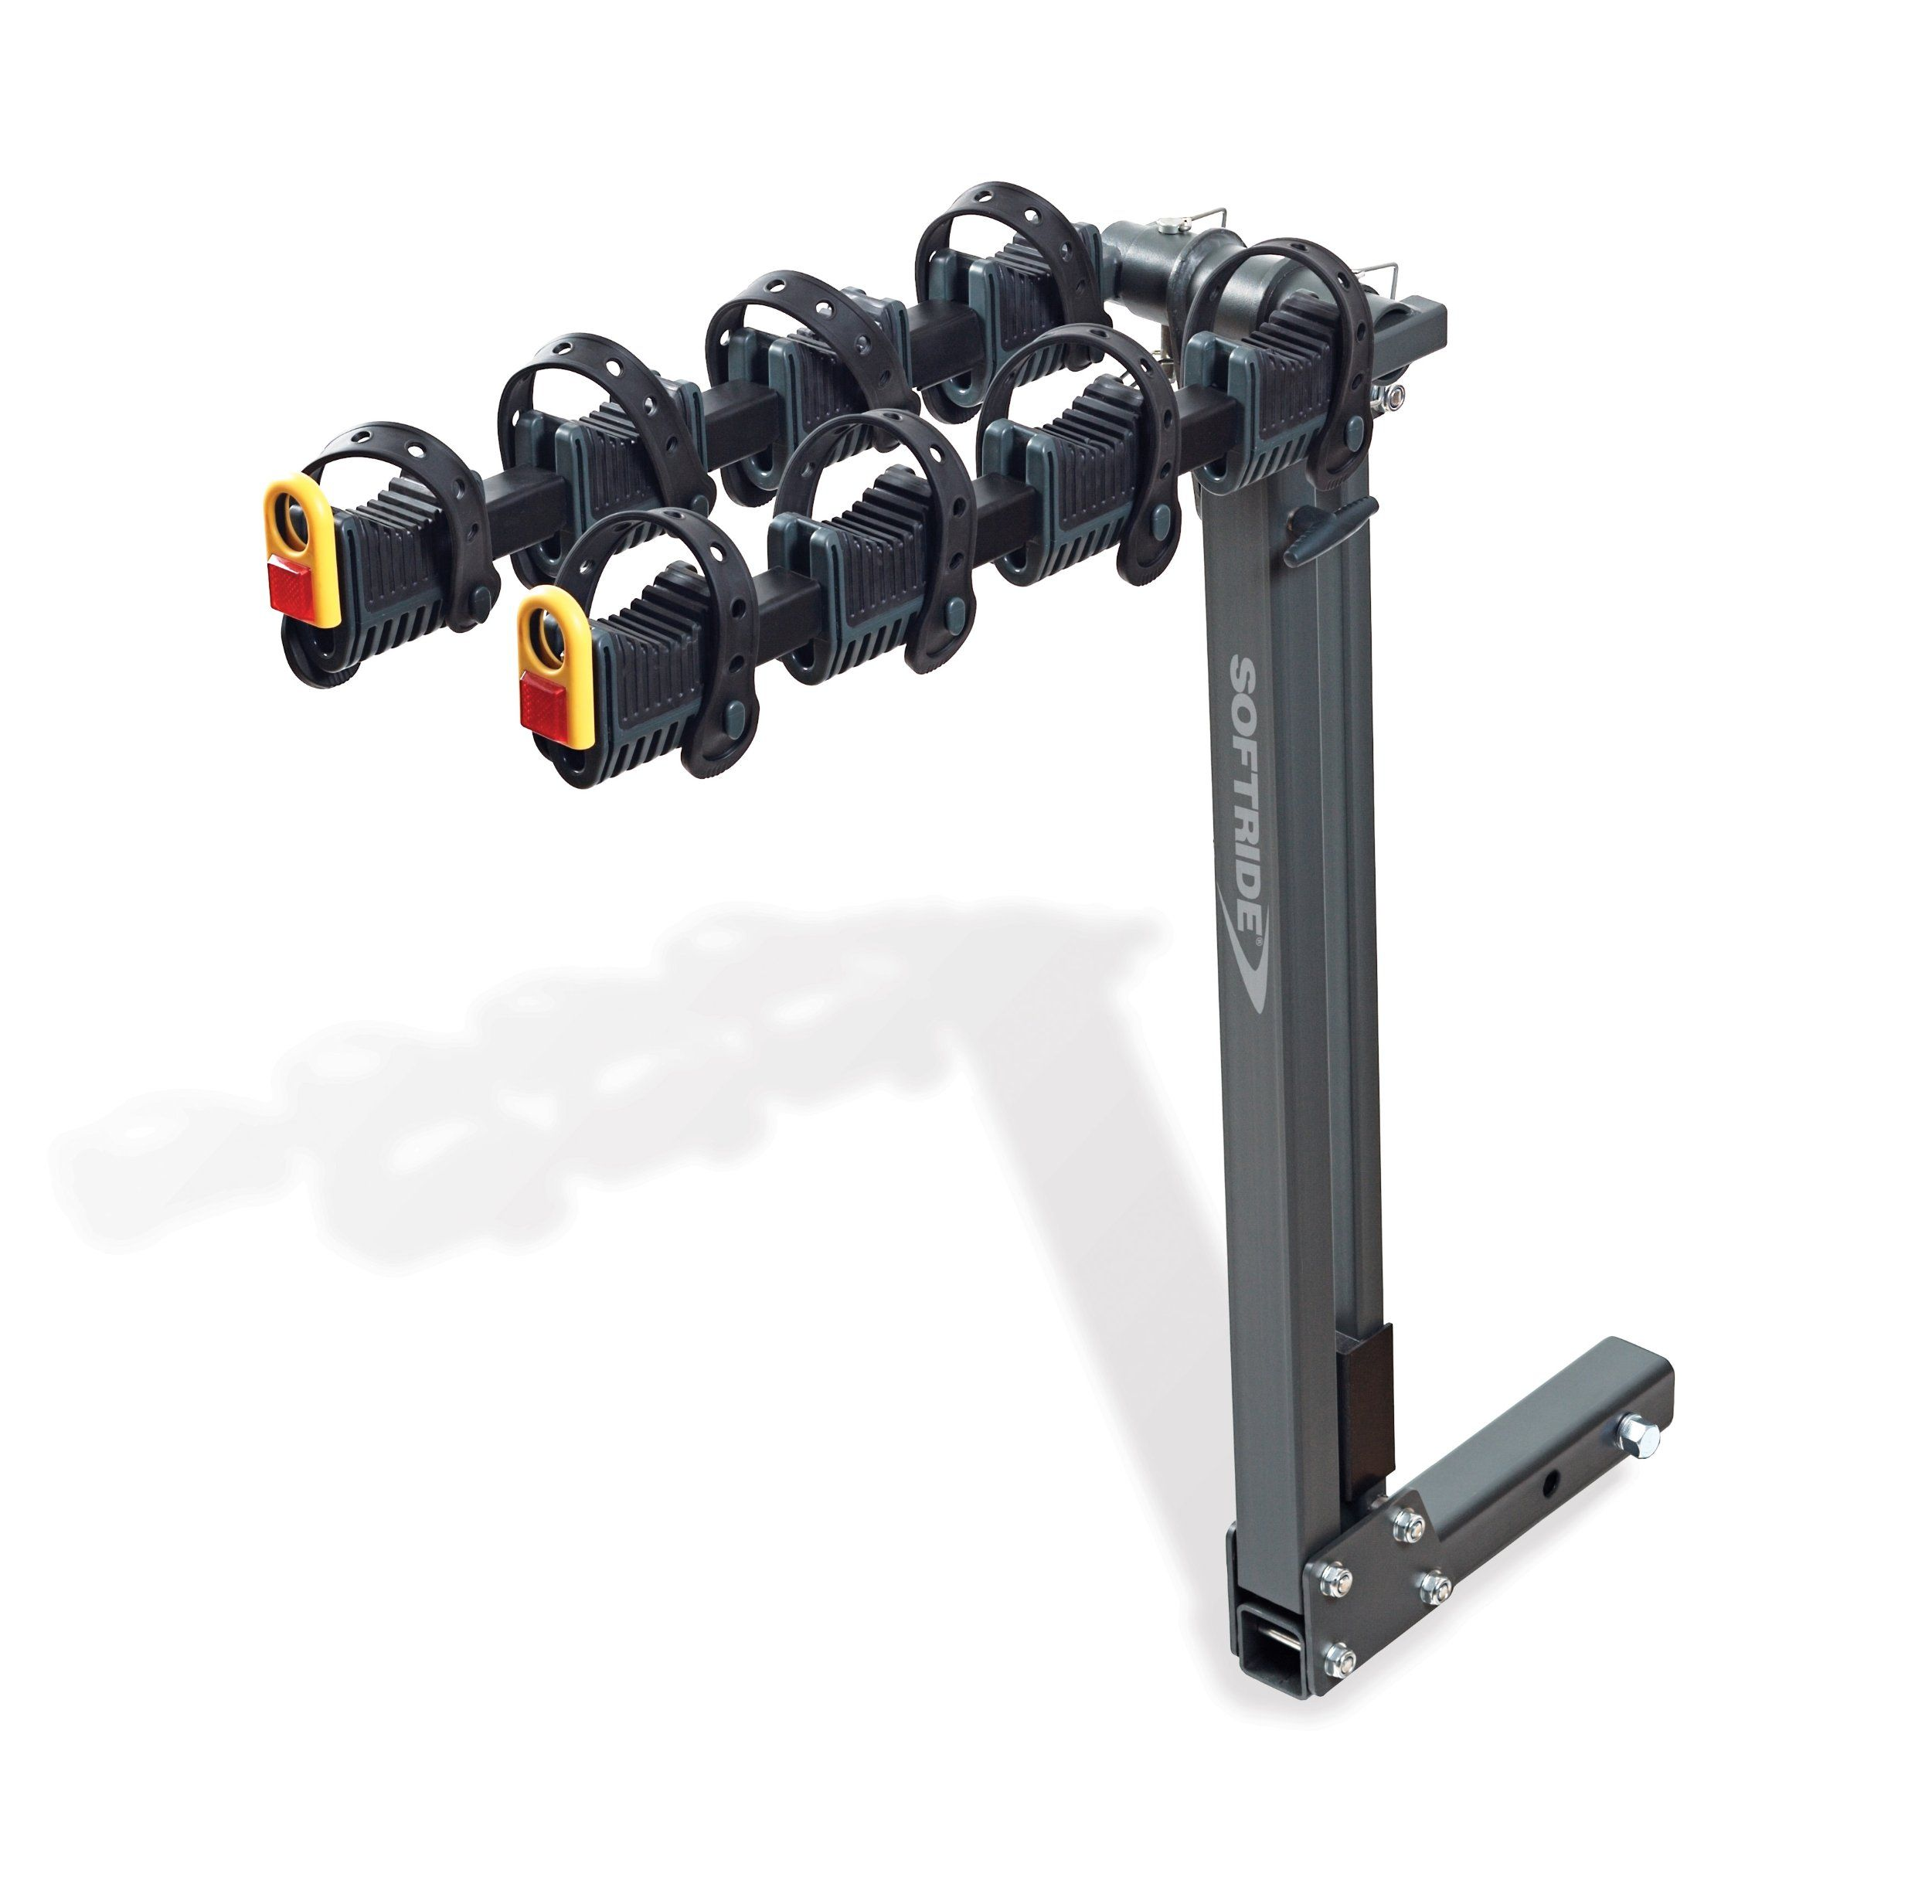 in with cargo steel tool northern carrier rack pin equipment carriers tow ultra ftf model capacity bike hitch lb receiver